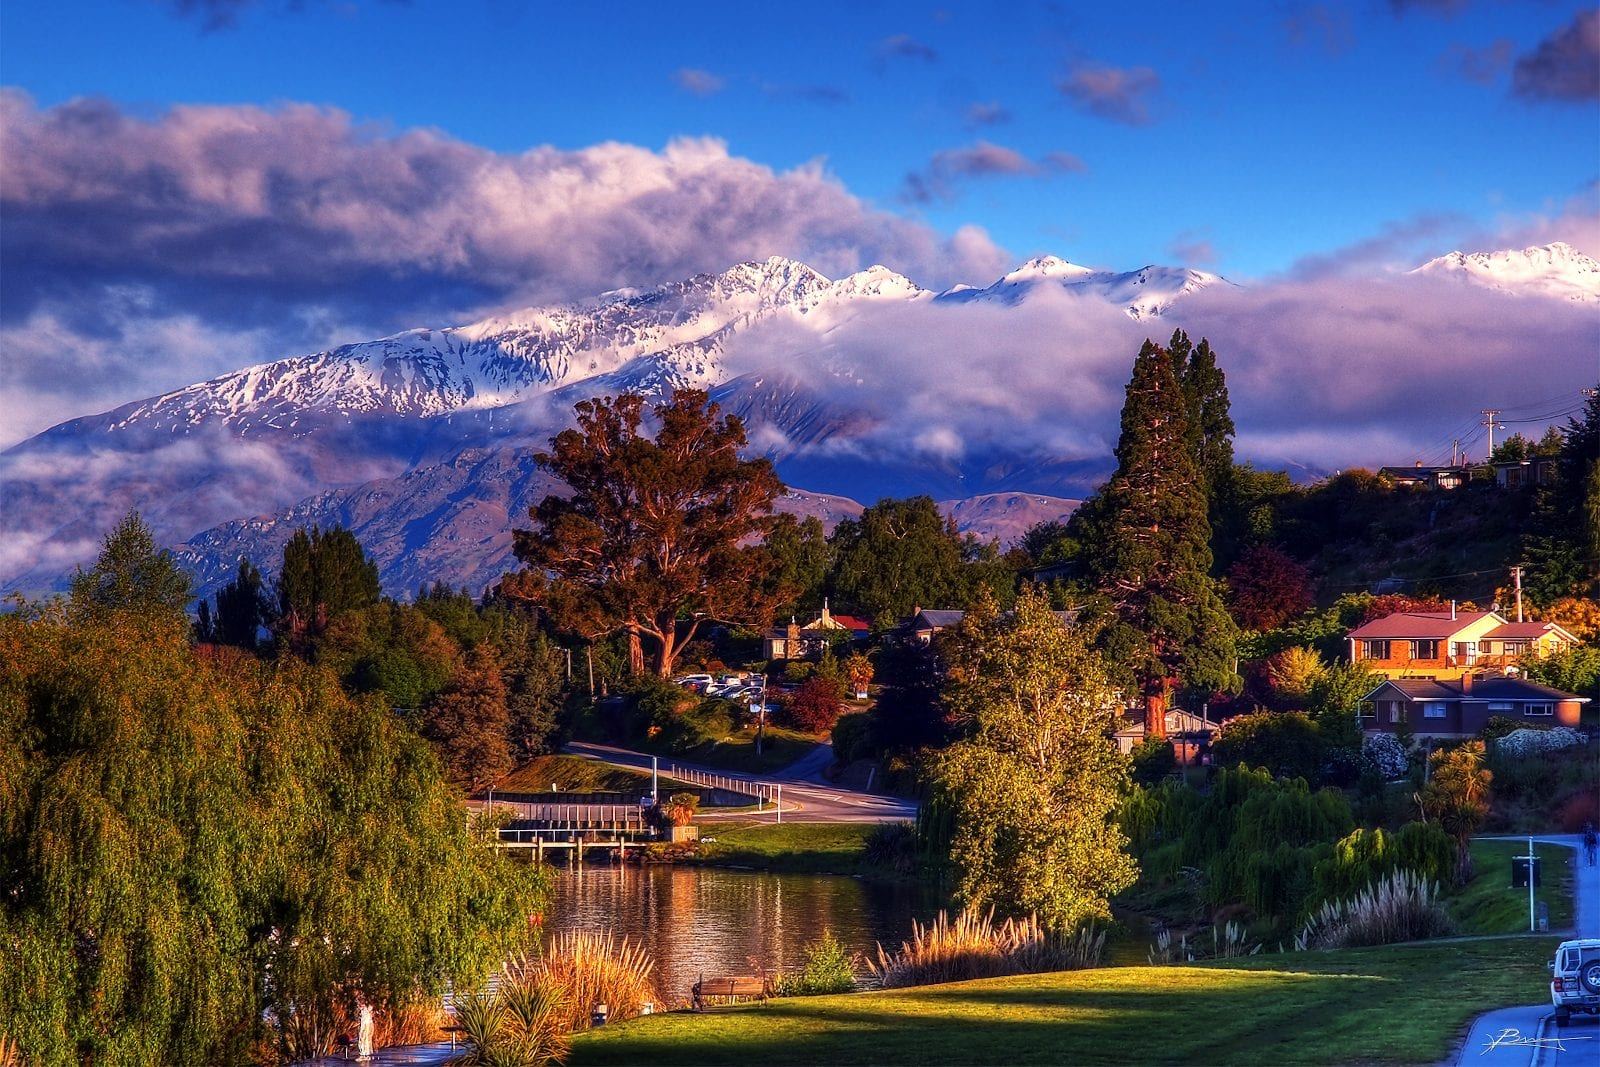 New Zealand Wanaka Morning View